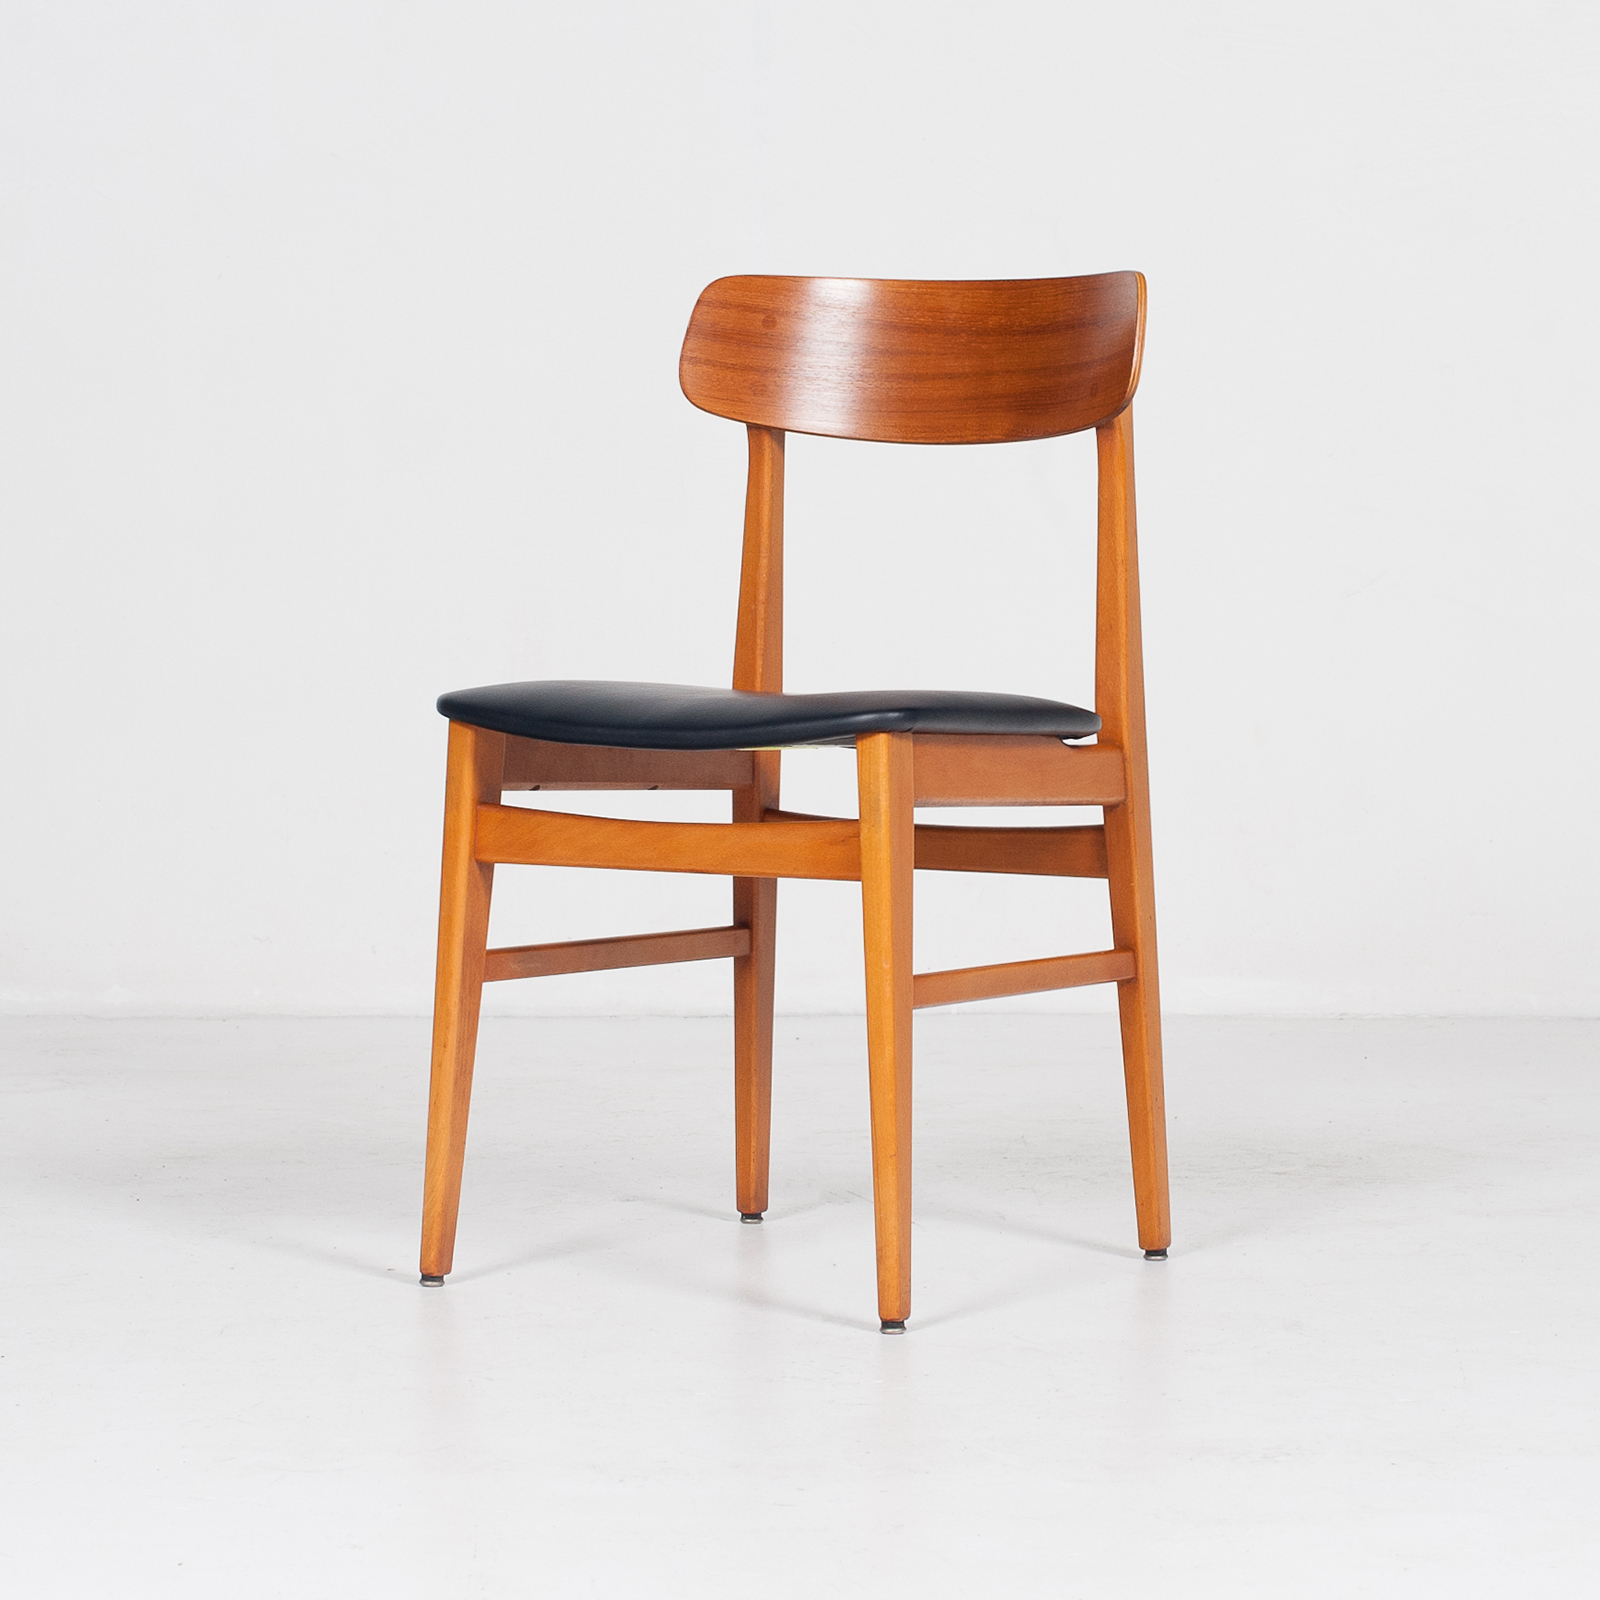 Set Of 4 Dining Chairs In Teak And Beech, 1960s, Denmark5